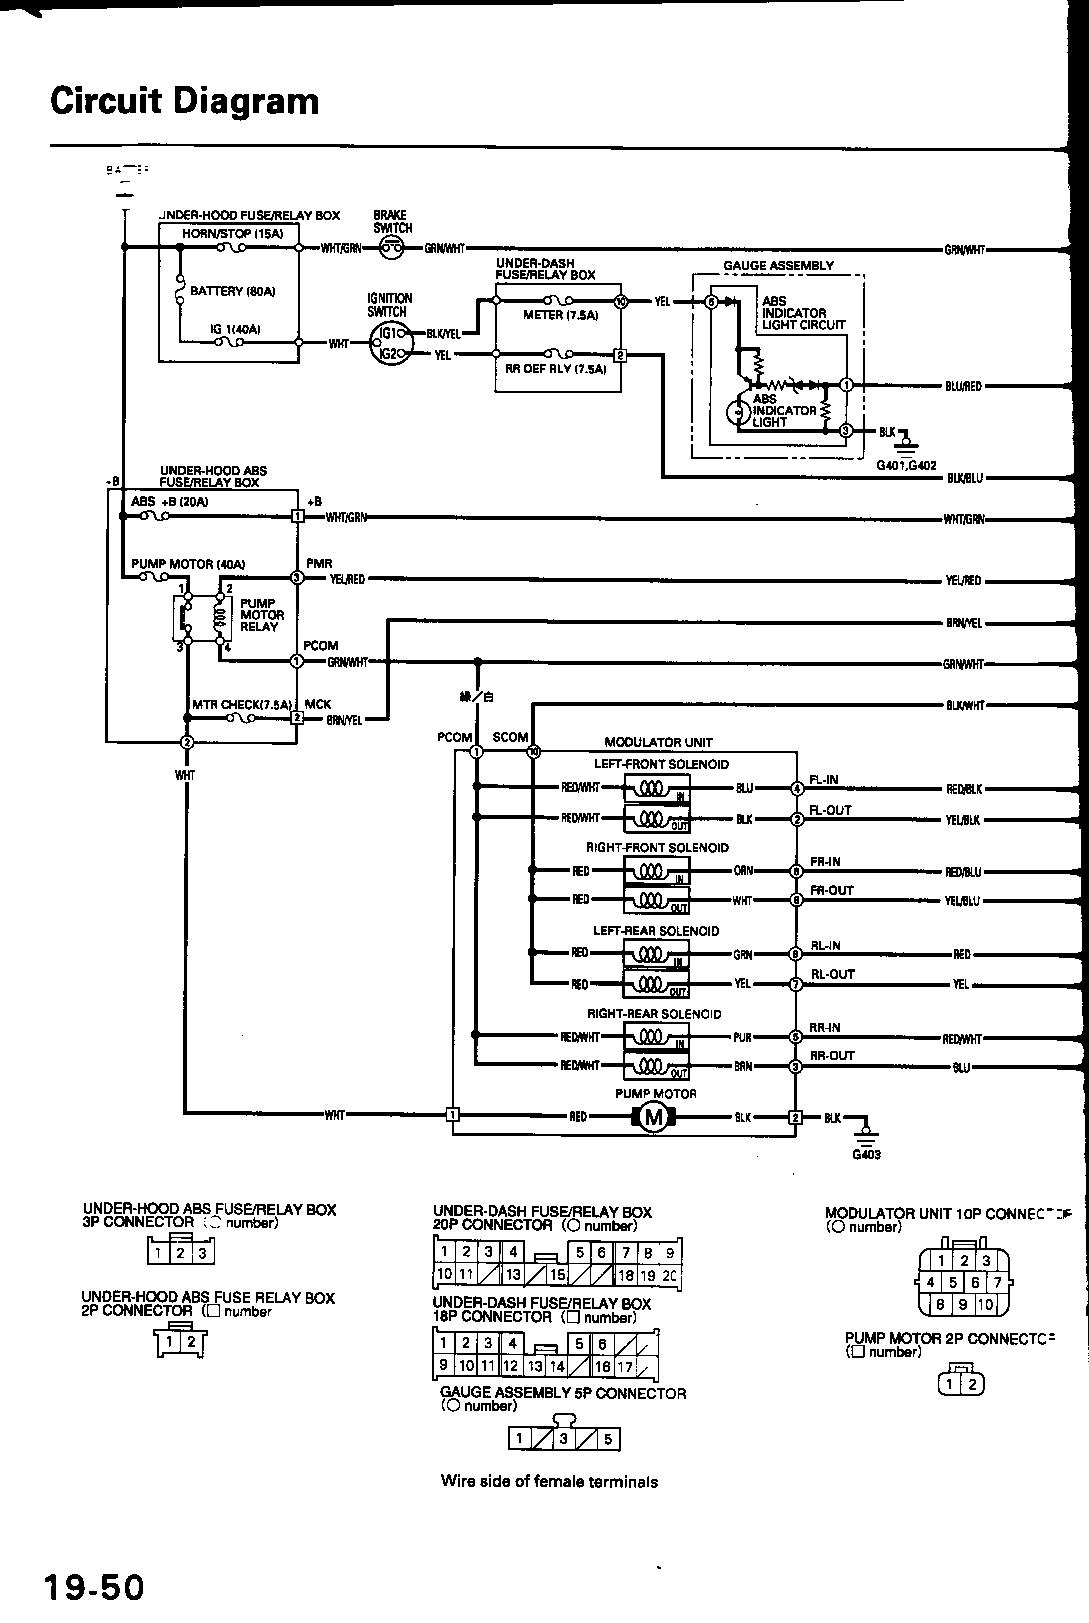 2006 honda civic headlight wiring diagram venn bold cigarette lighter fuse in accord 96 ex